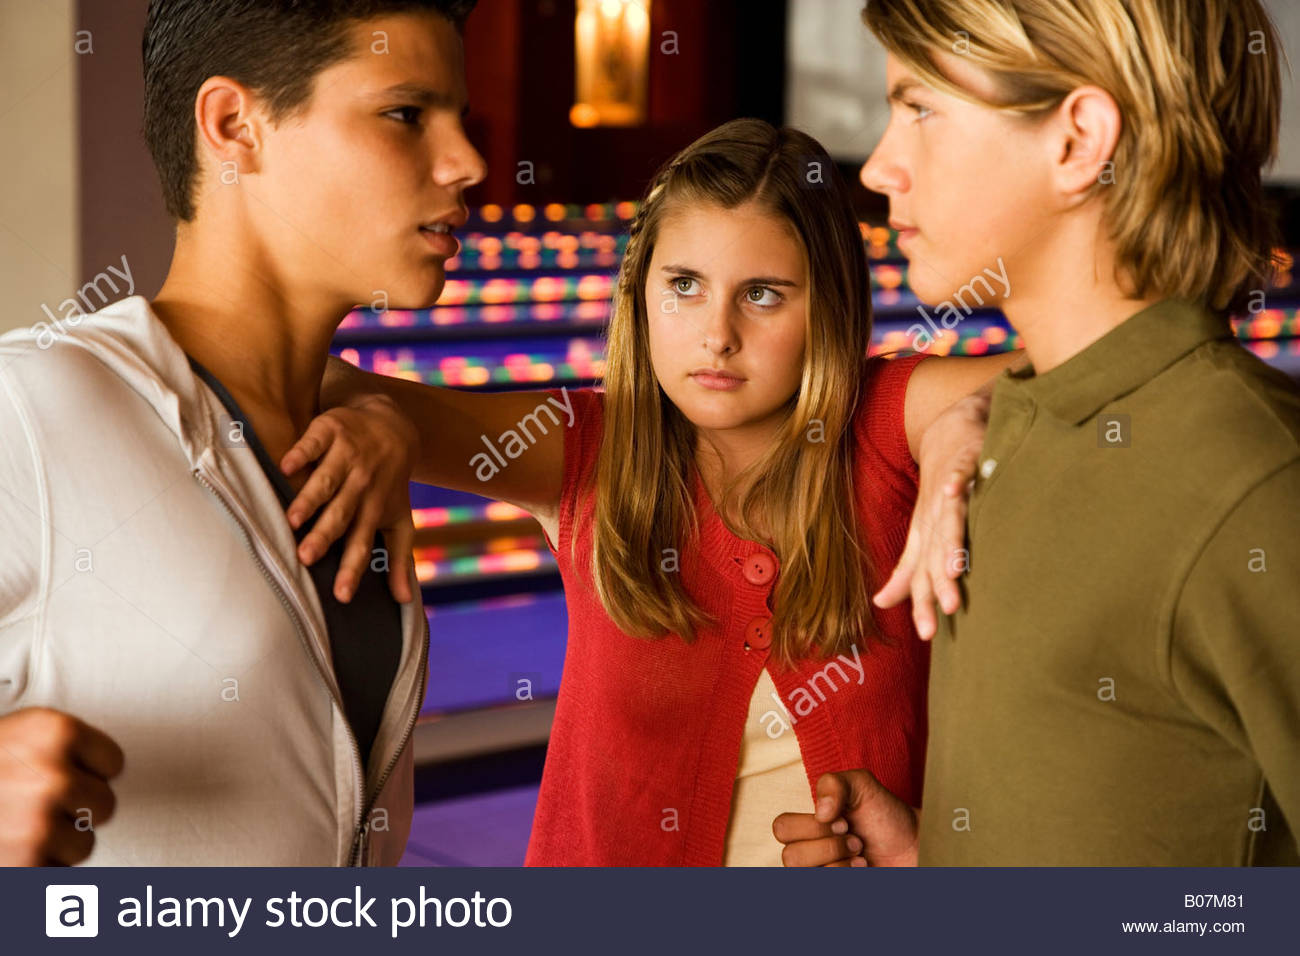 Argument between teenage boys in a bowling alley, girl mediating between them - Stock Image